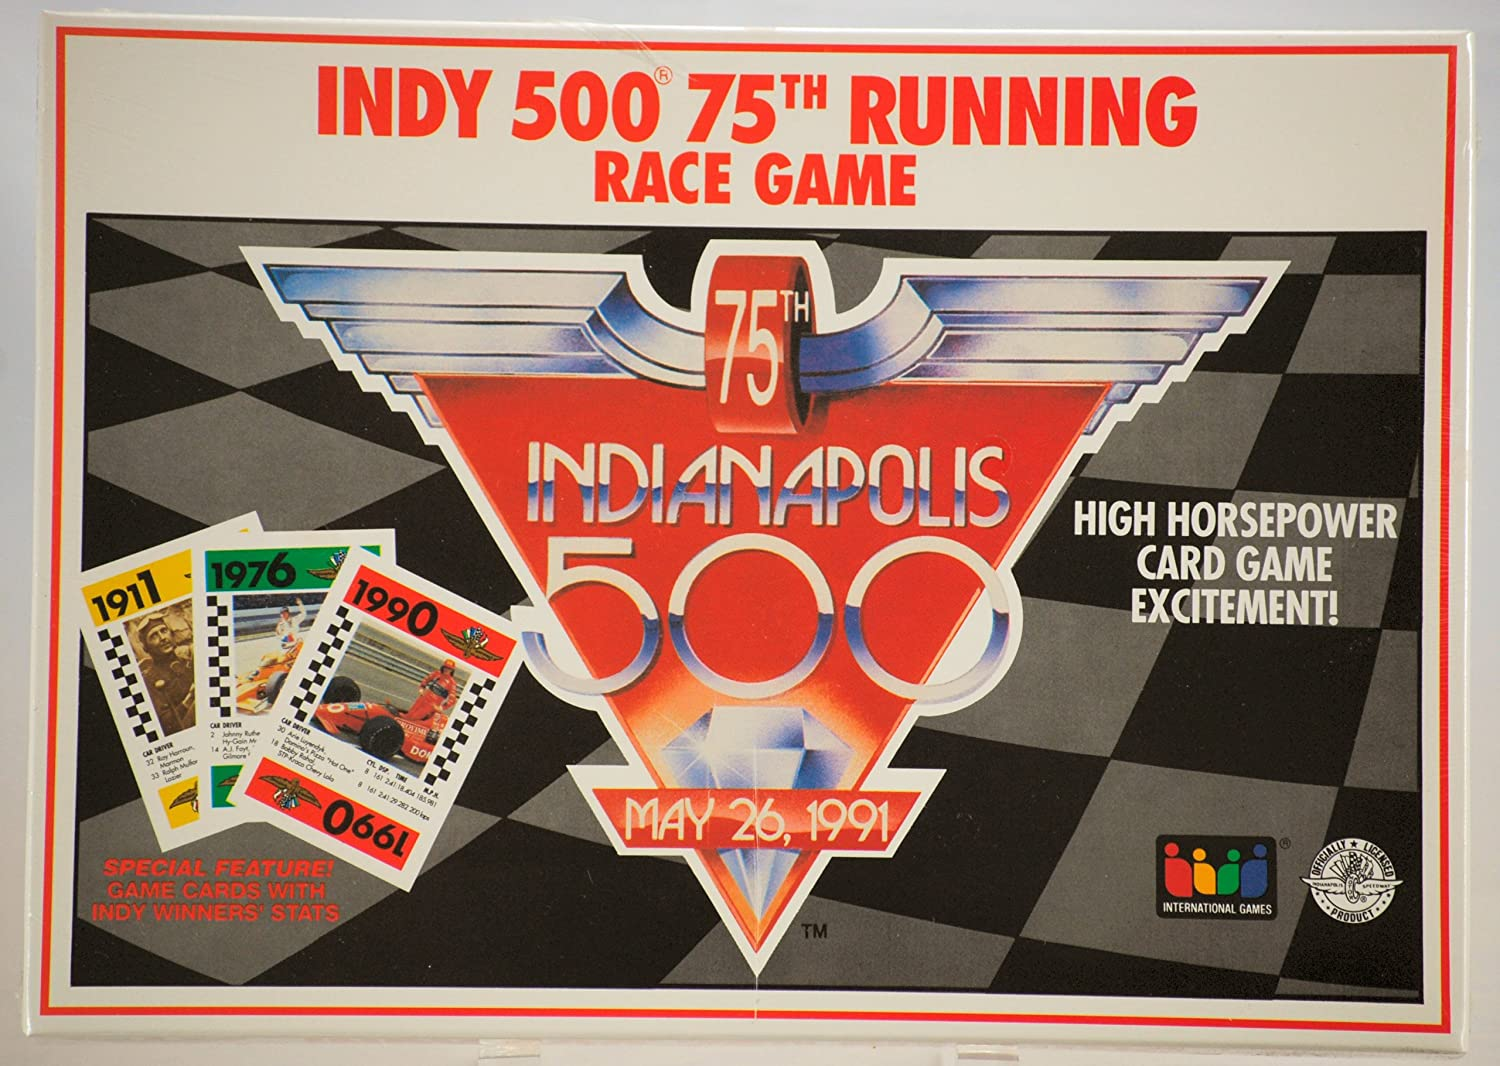 a precios asequibles Indy 500 75th Running Race Game by Indy Indy Indy 500  envio rapido a ti